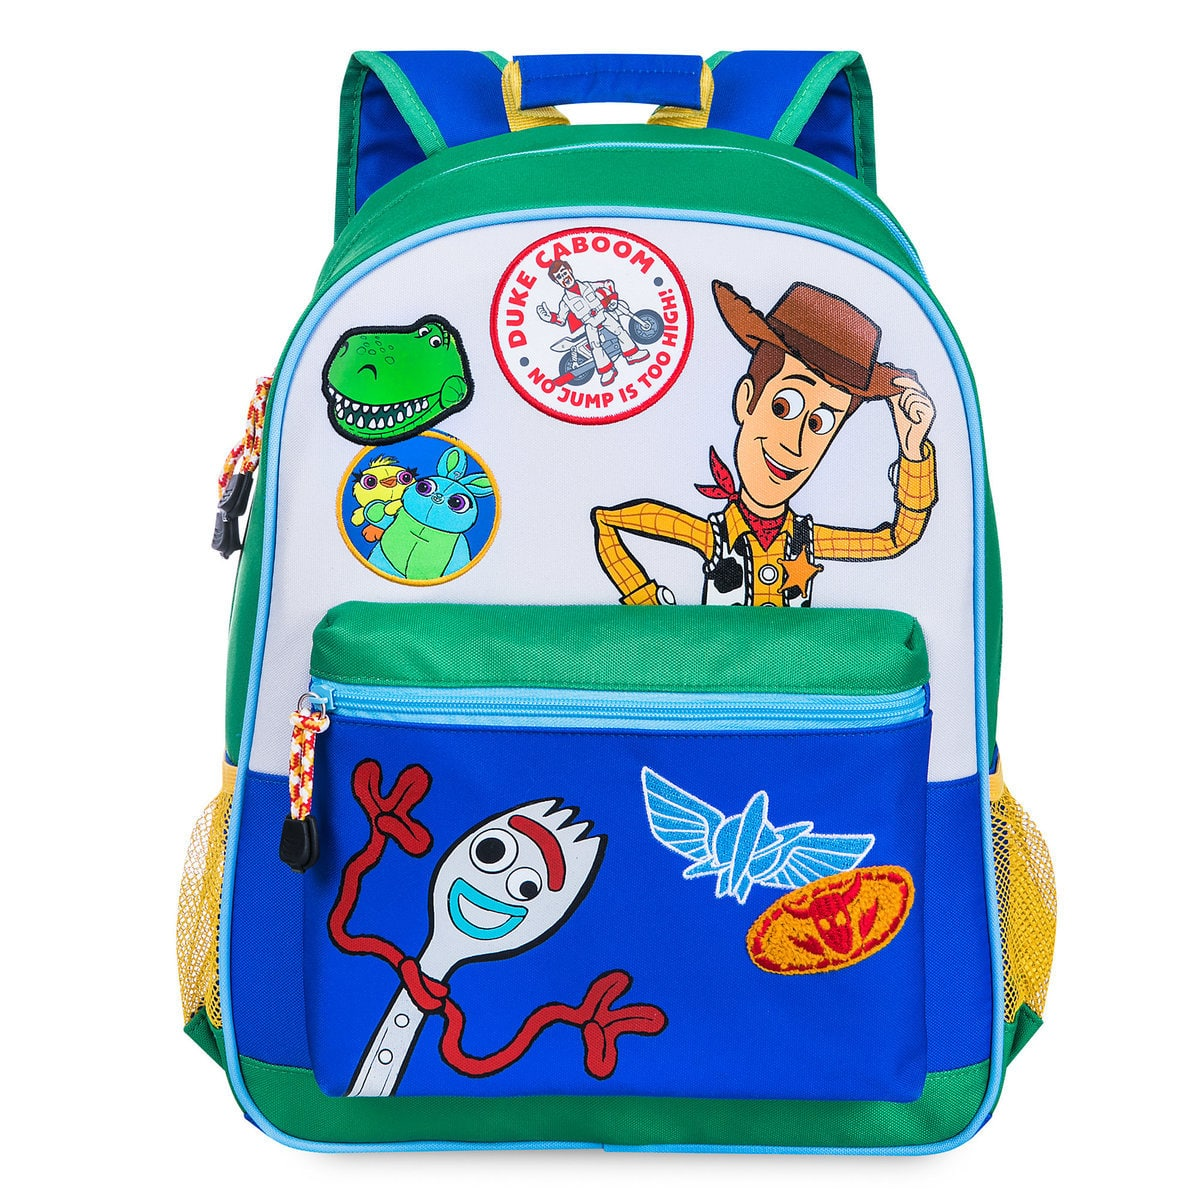 Toy Story 4 Backpack